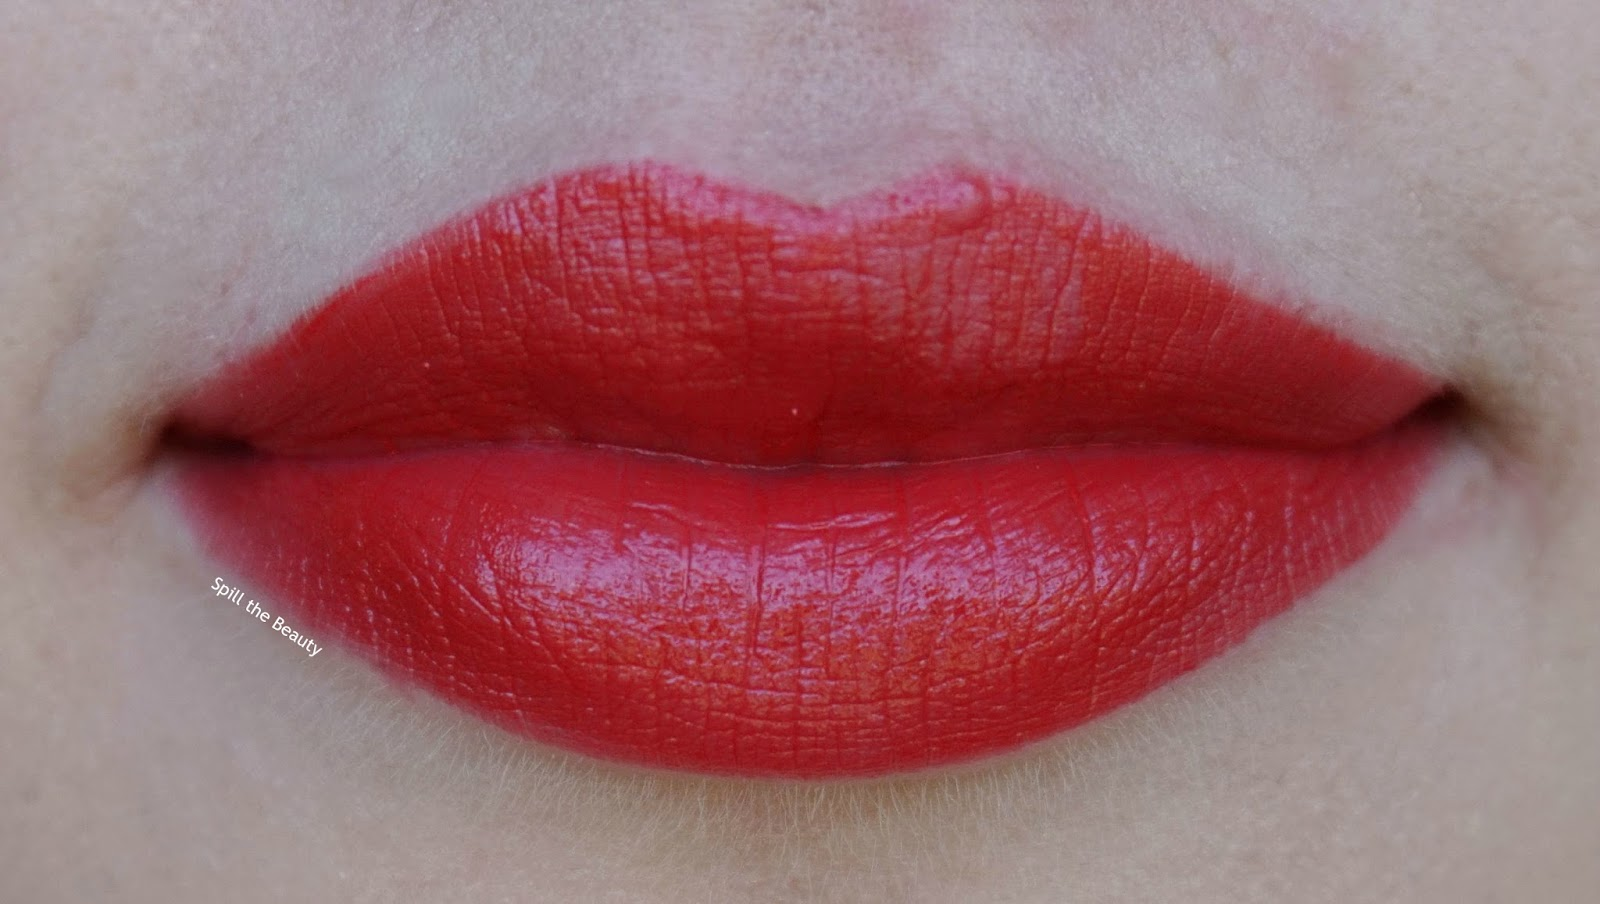 dior rouge red smile 080 - lipstick